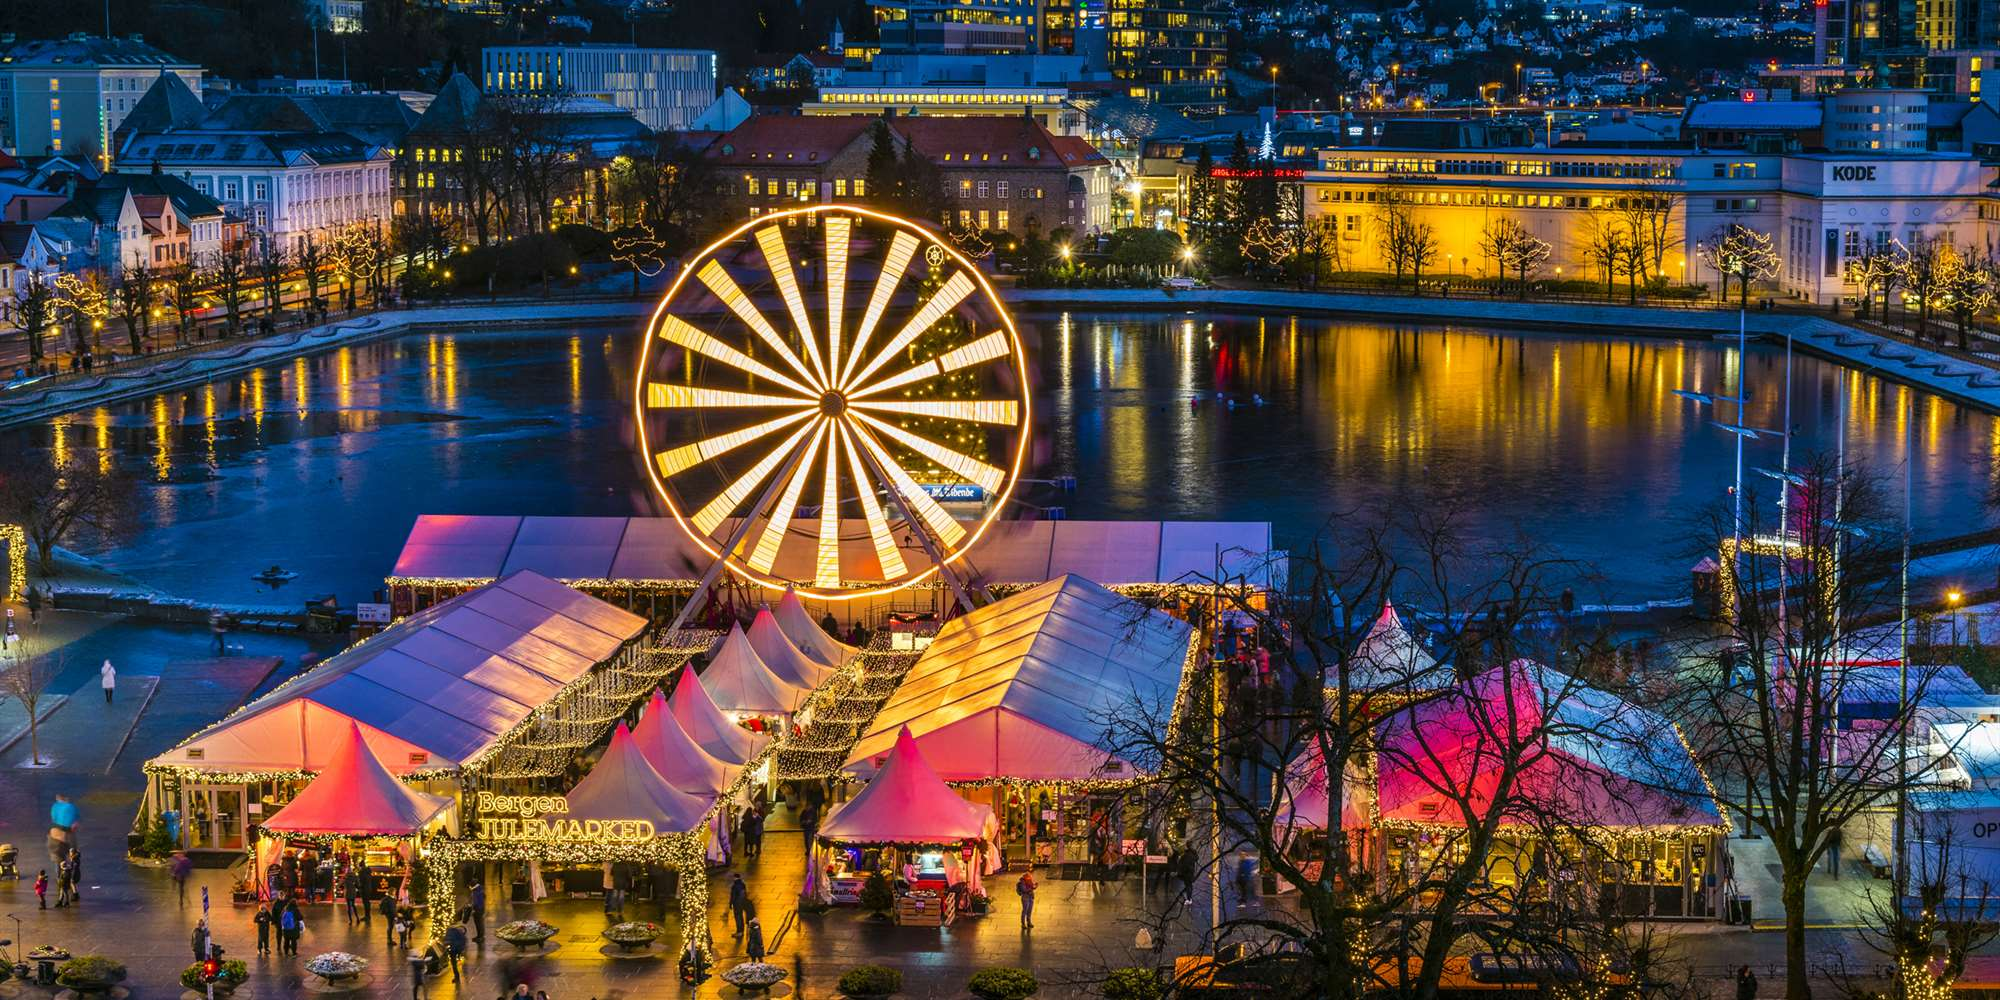 Bergen Christmas Market - Major events